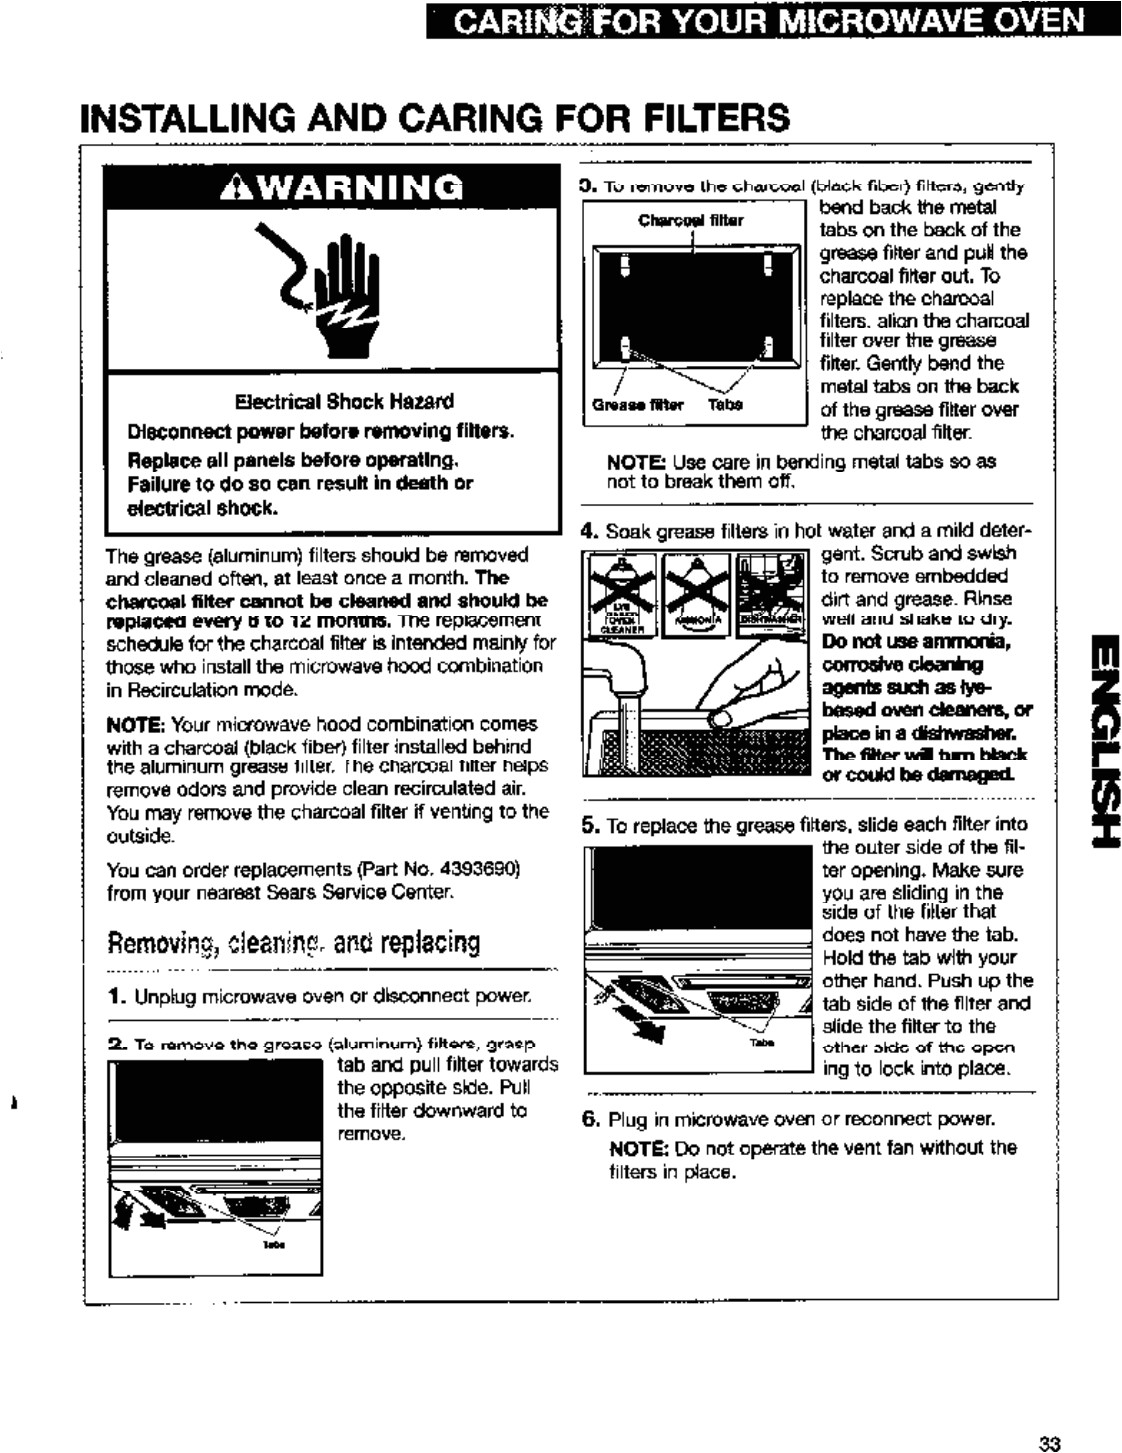 page 33 of gh8185 microwave oven user manual manual2 whirlpool microwave products development limited